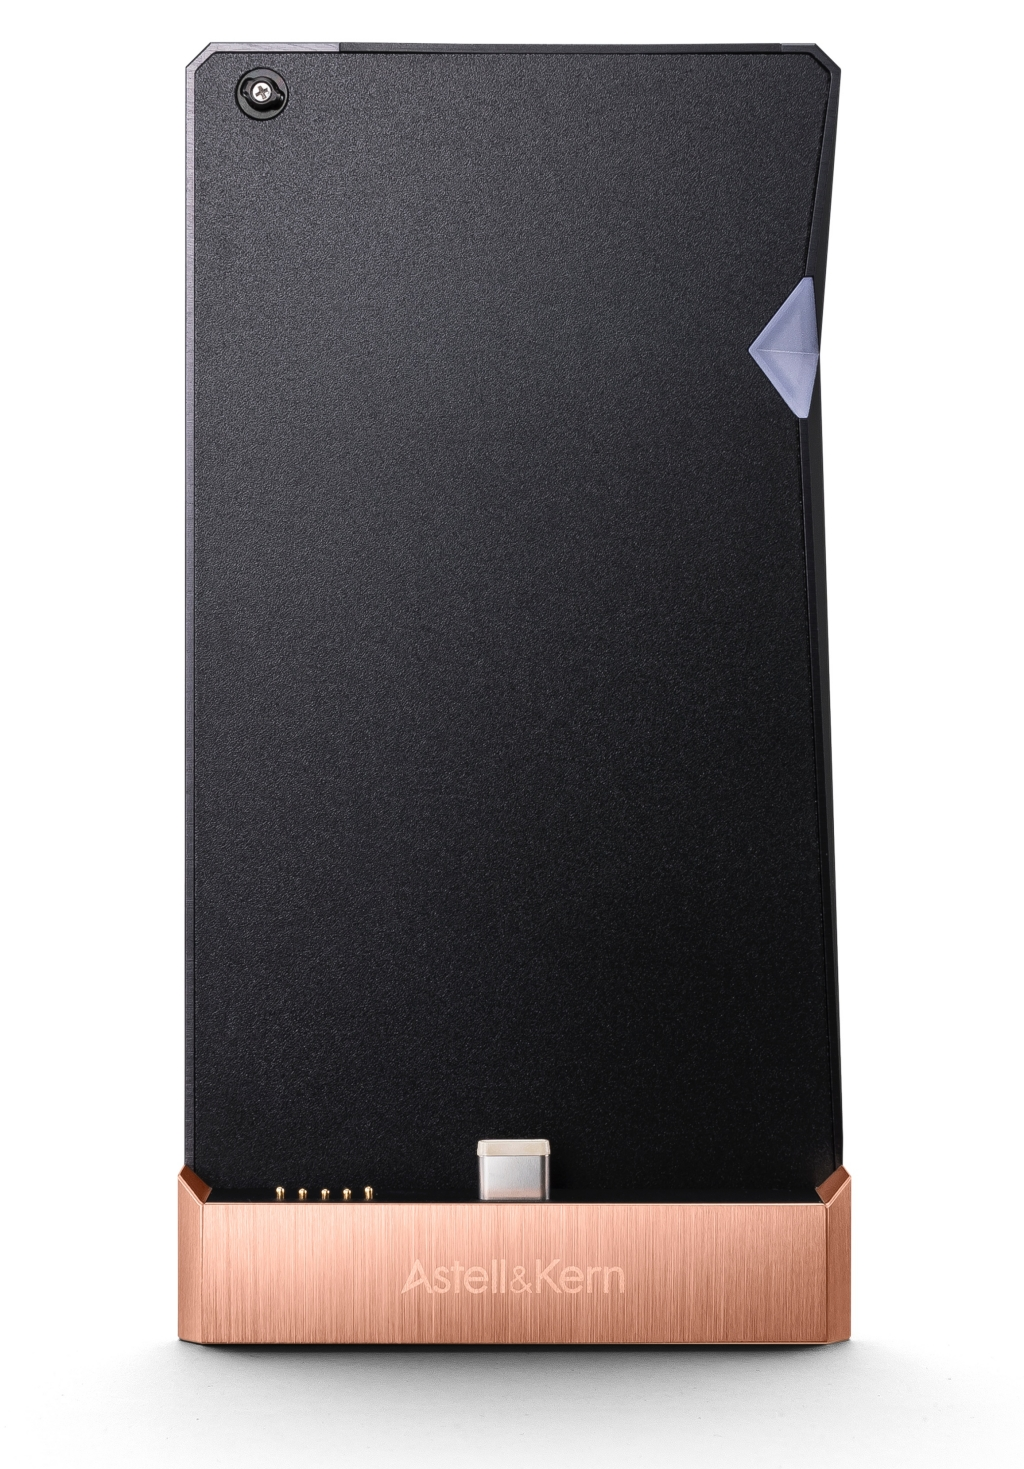 resize_SP1000 AMP_01_Copper